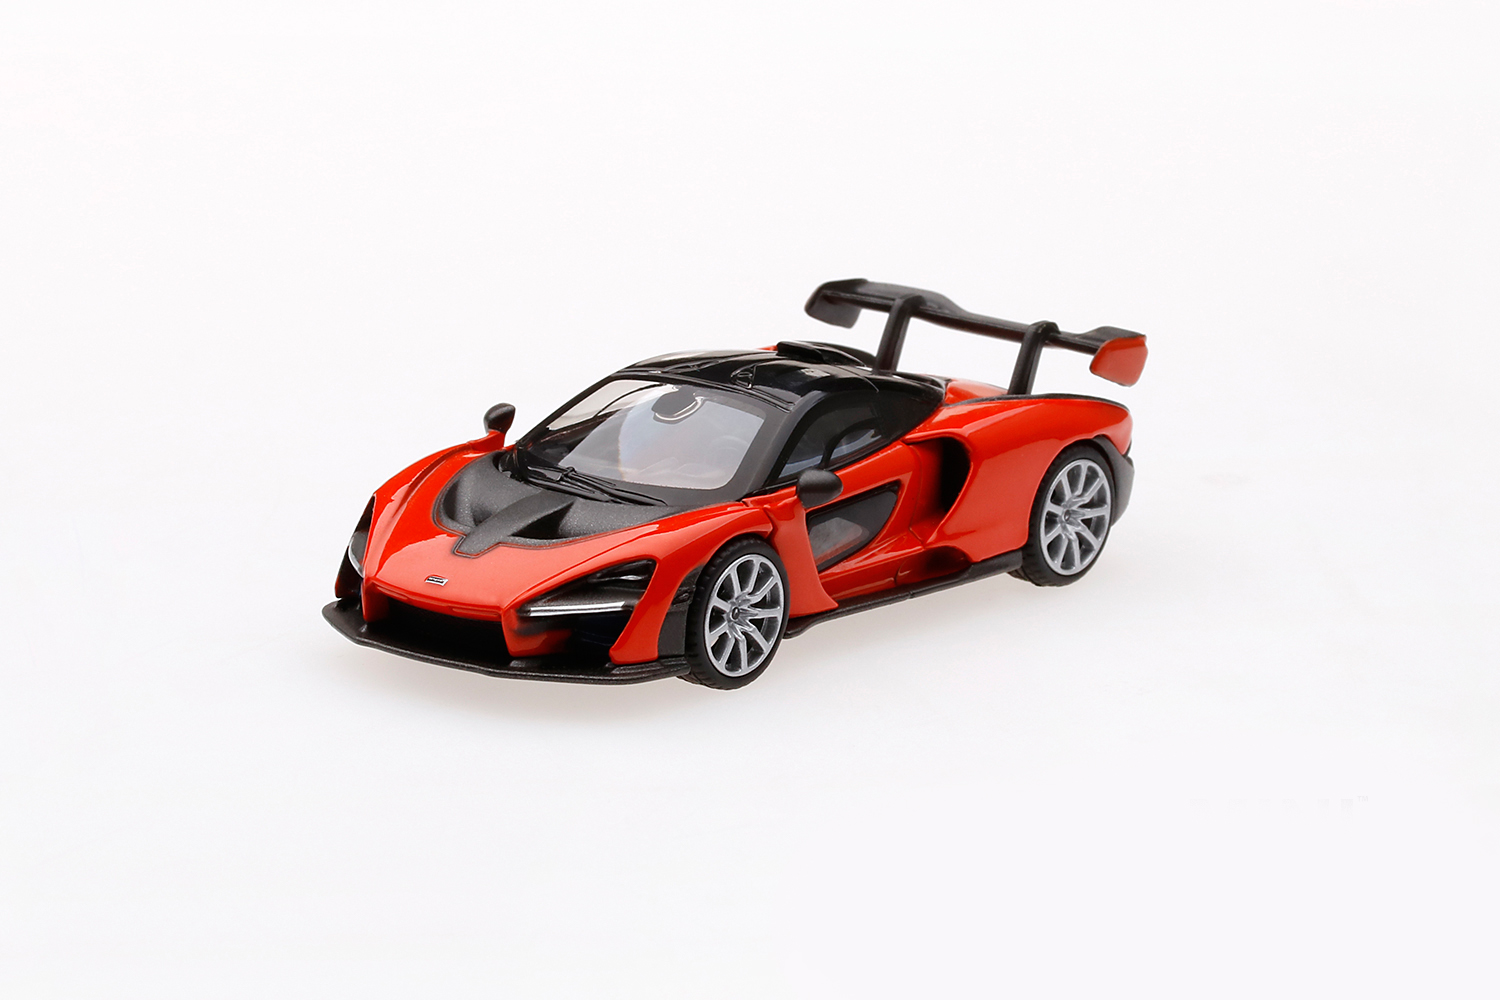 Mini GT 00018-R McLaren Senna - Mira Orange - RHD 1:64